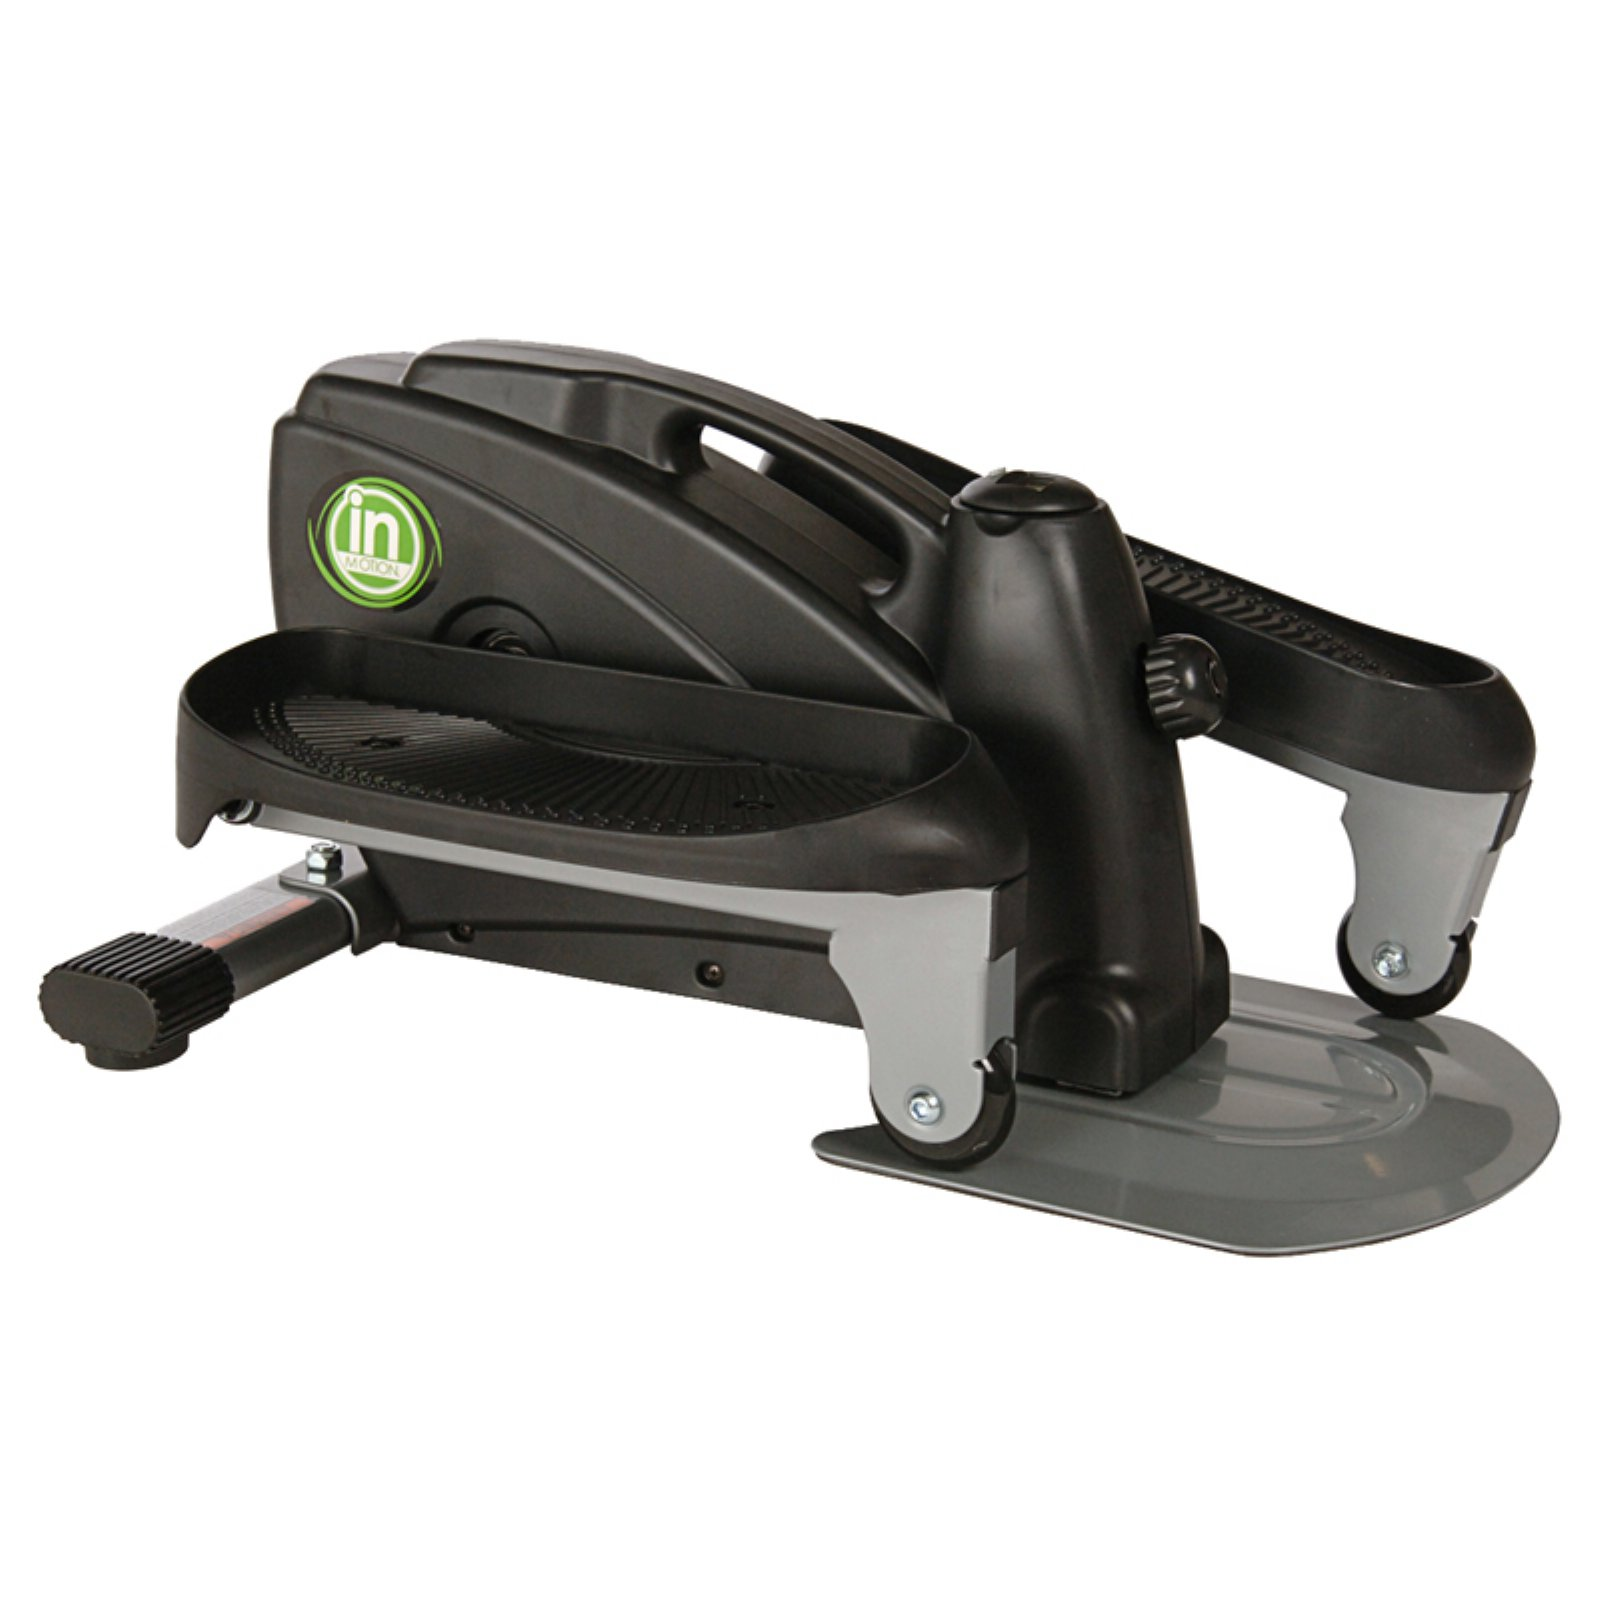 InMotion Compact Strider mini elliptical for sitting or standing